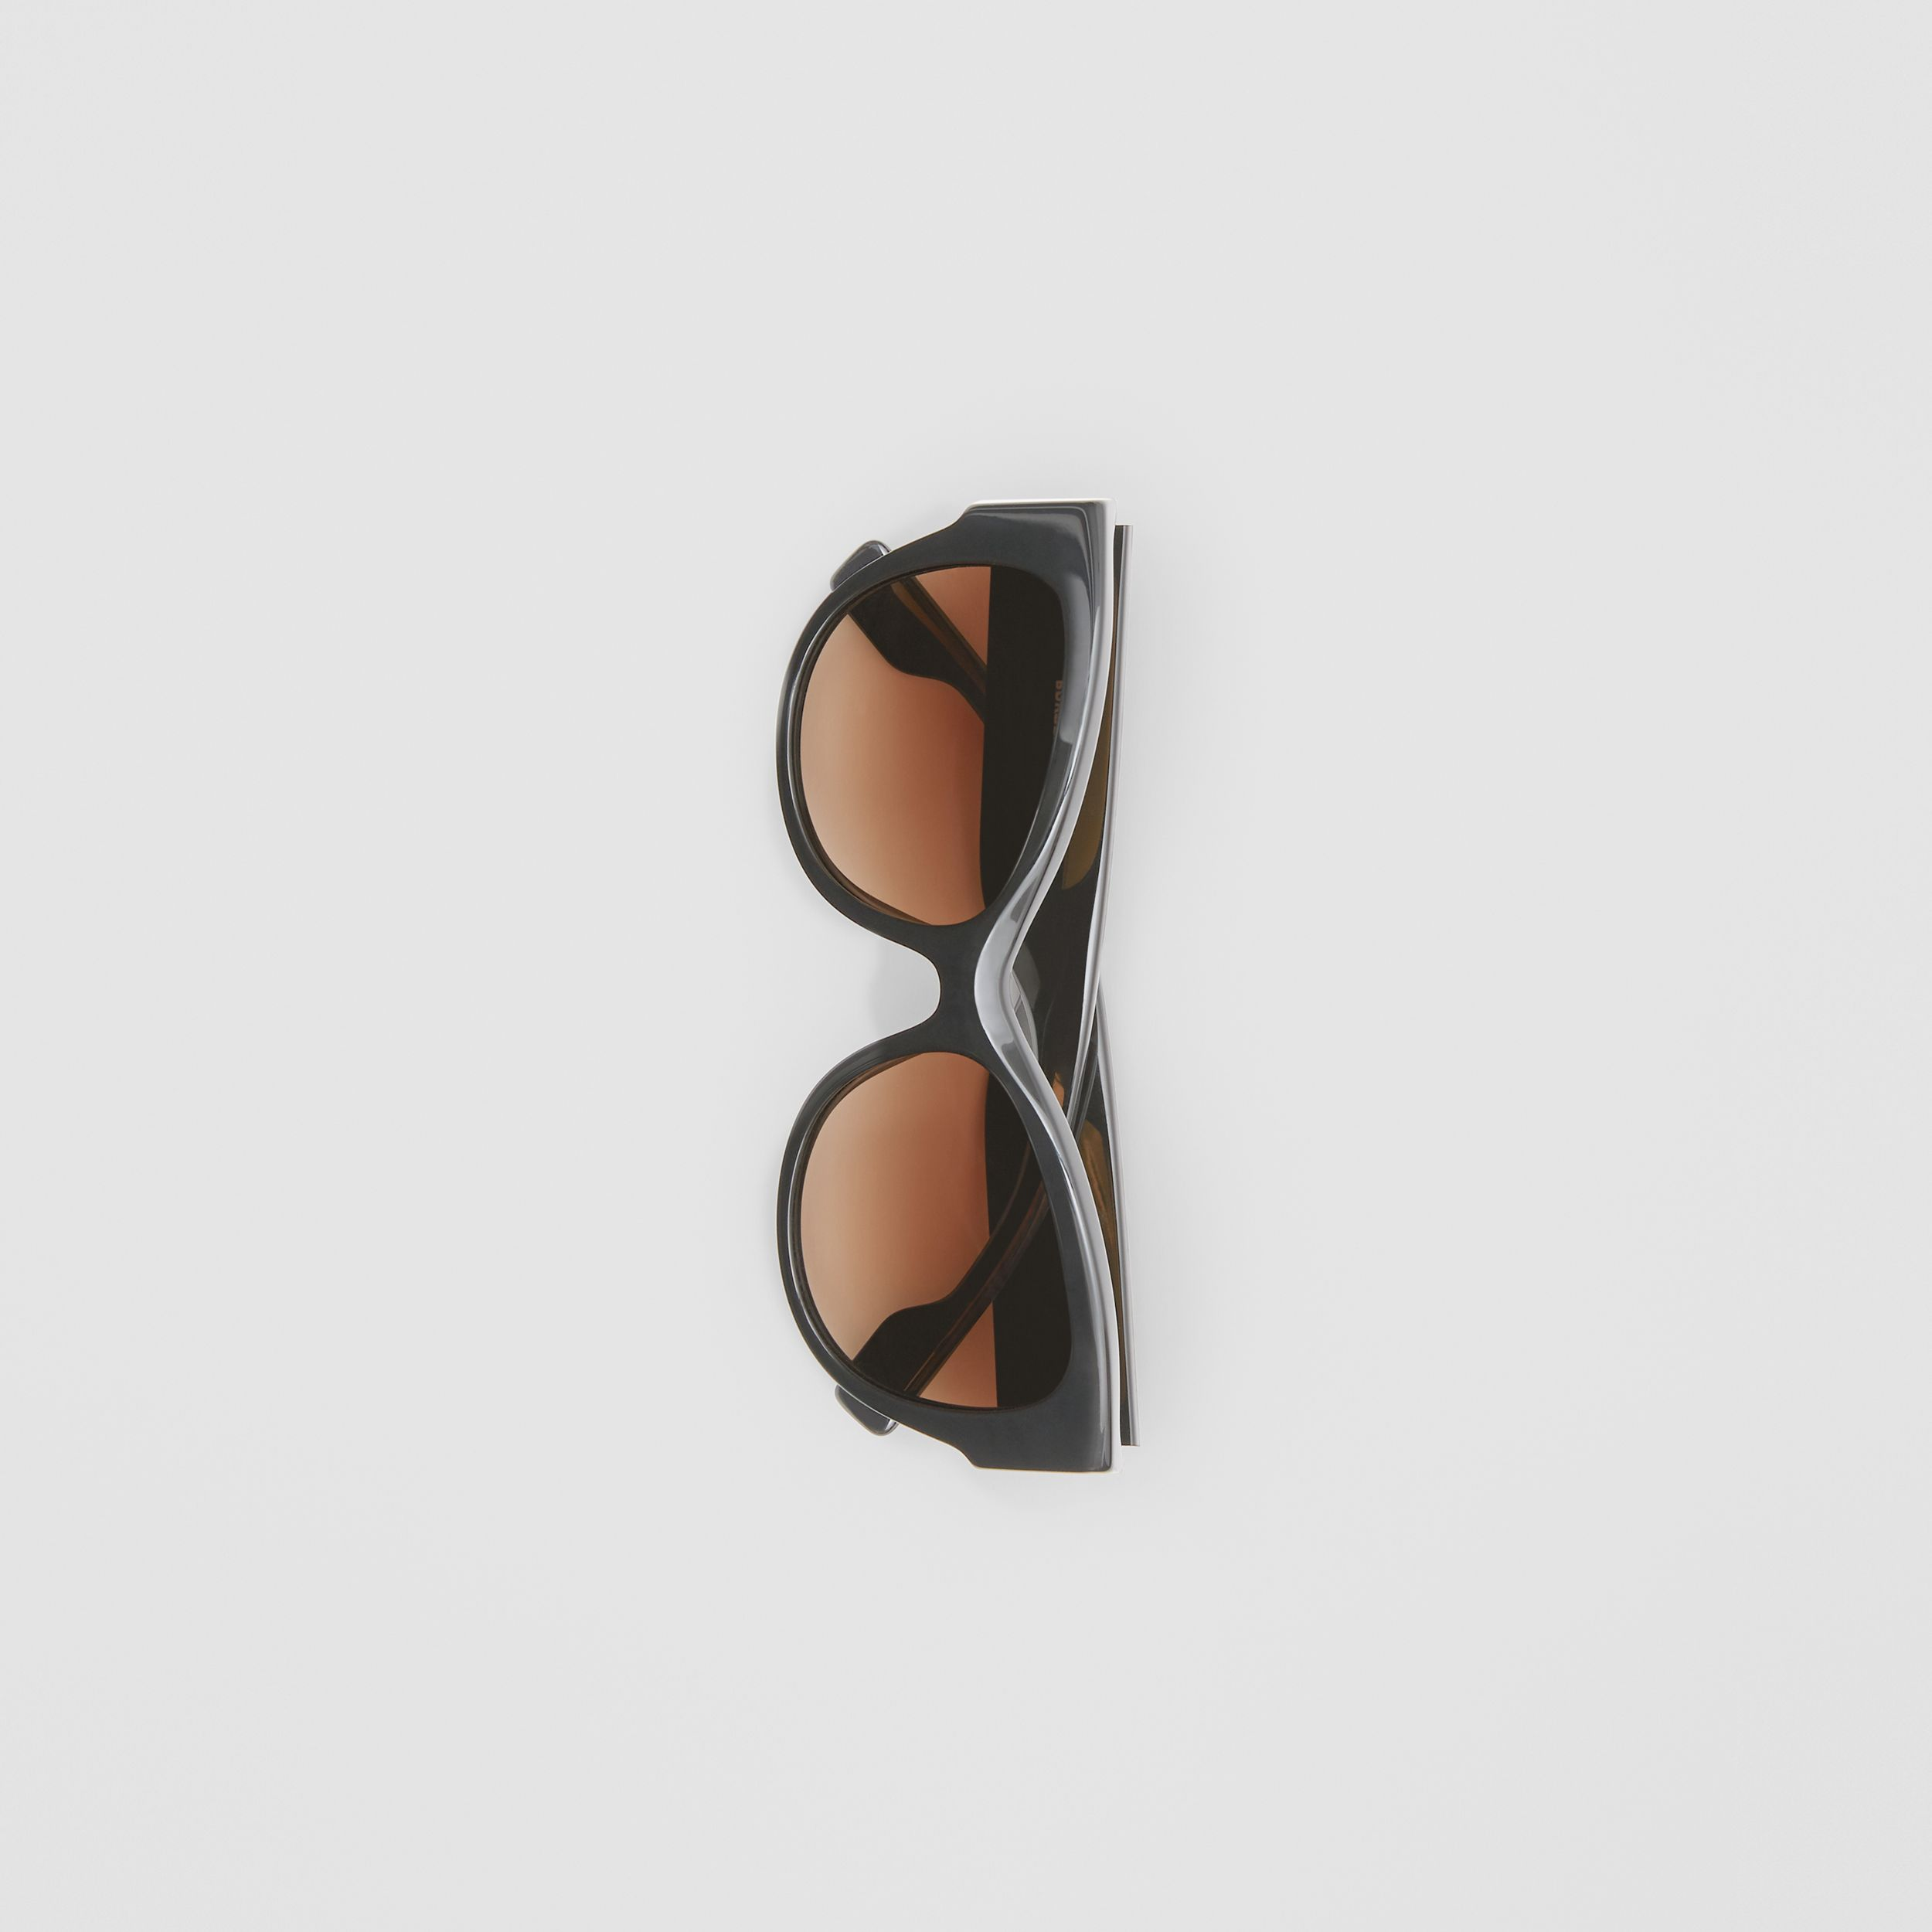 Monogram Detail Butterfly Frame Sunglasses in Black/vermillion - Women | Burberry United States - 4